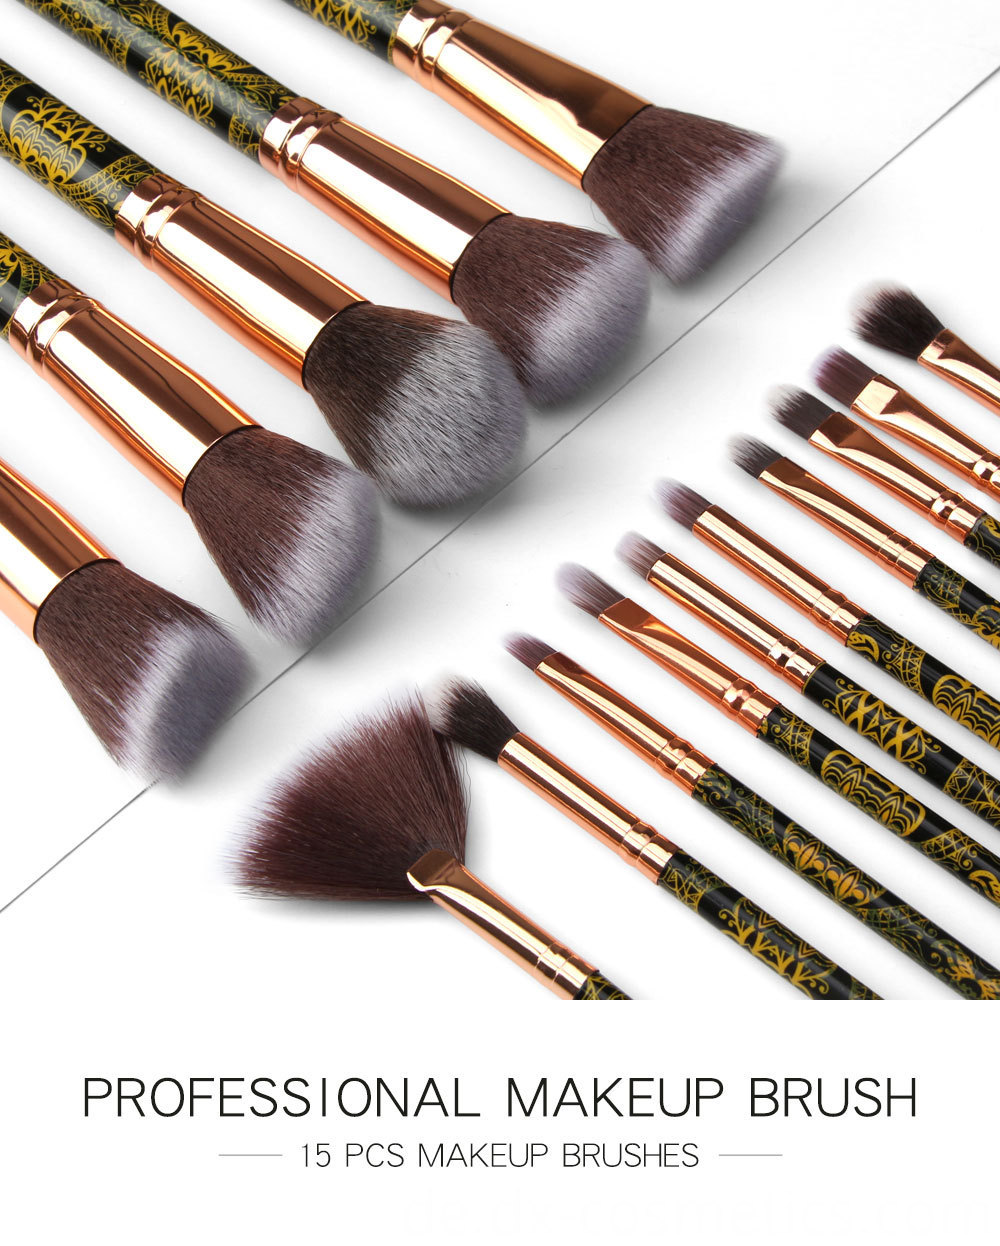 8 Pcs Eye Makeup Brushes Set 1